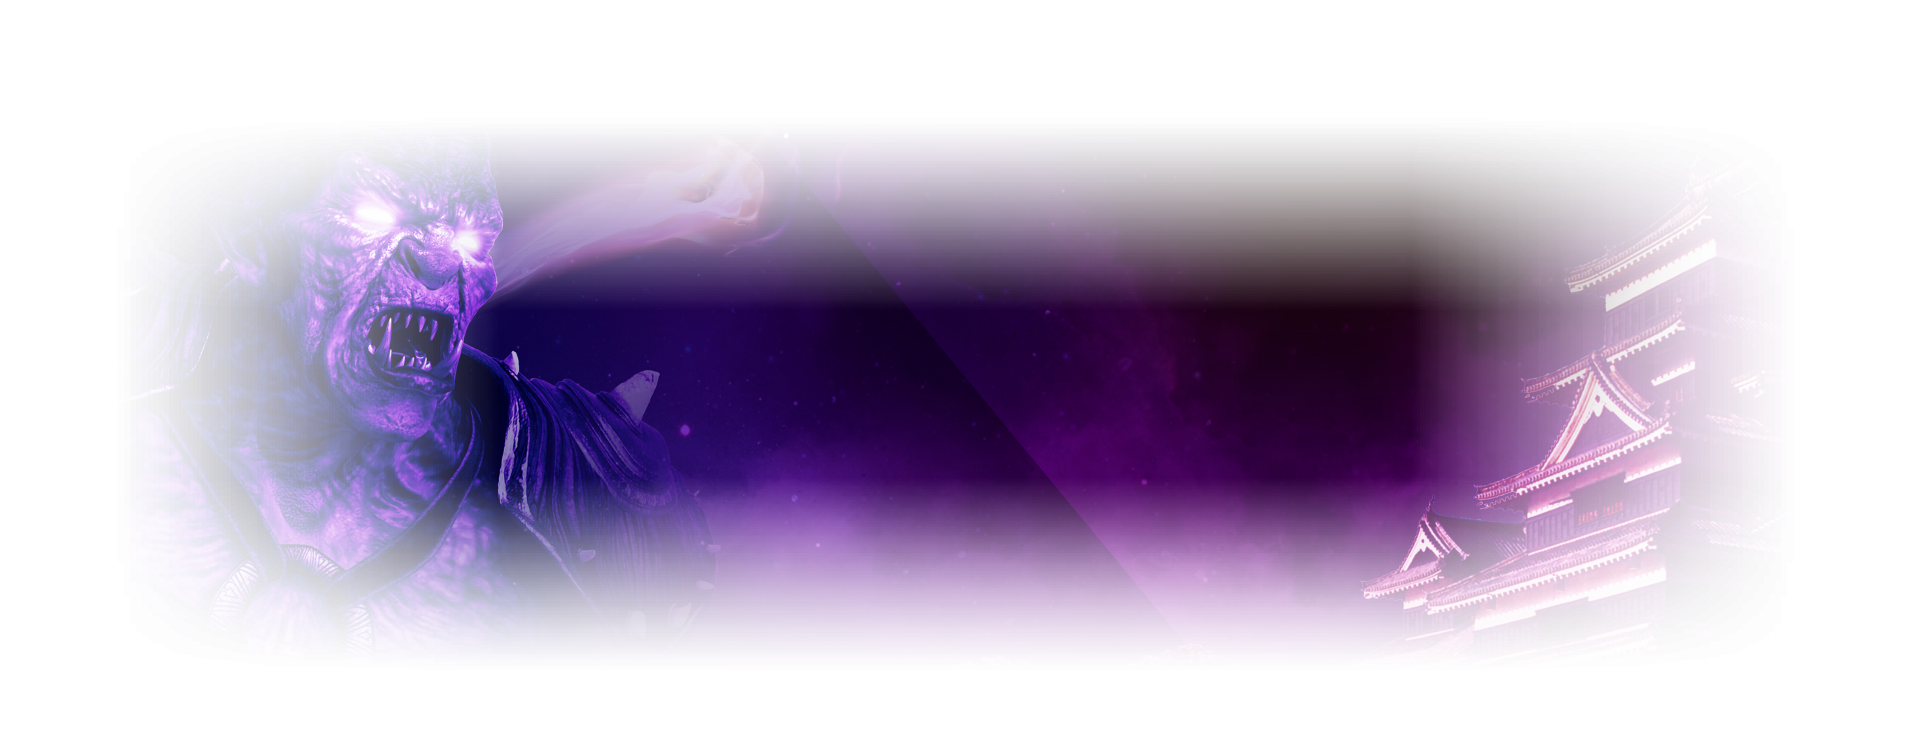 AGON_PRO_4_FV_FW_GS_R_BACKGROUND.png